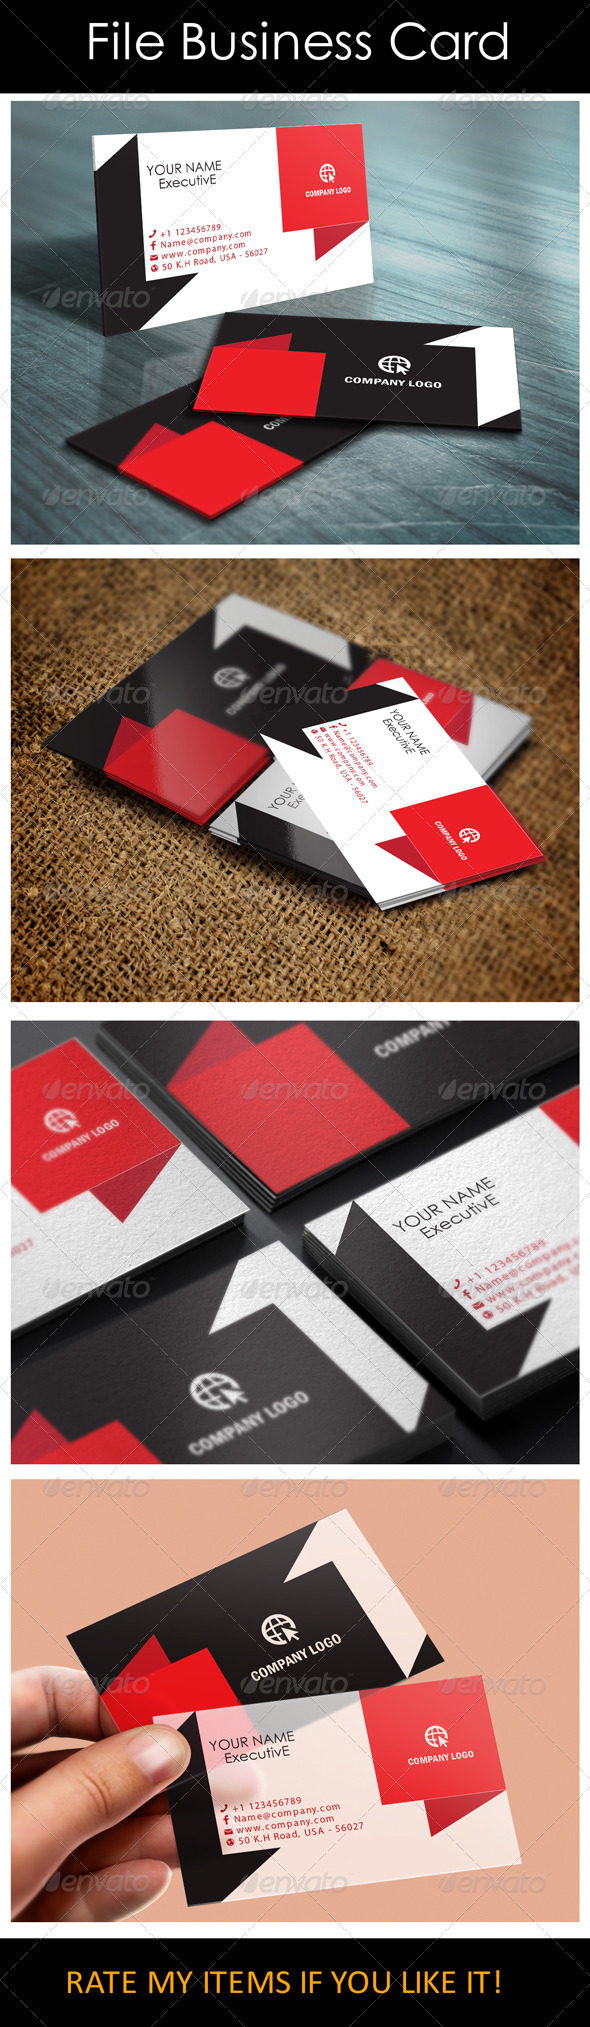 GraphicRiver Corporate File Business Card 5550899